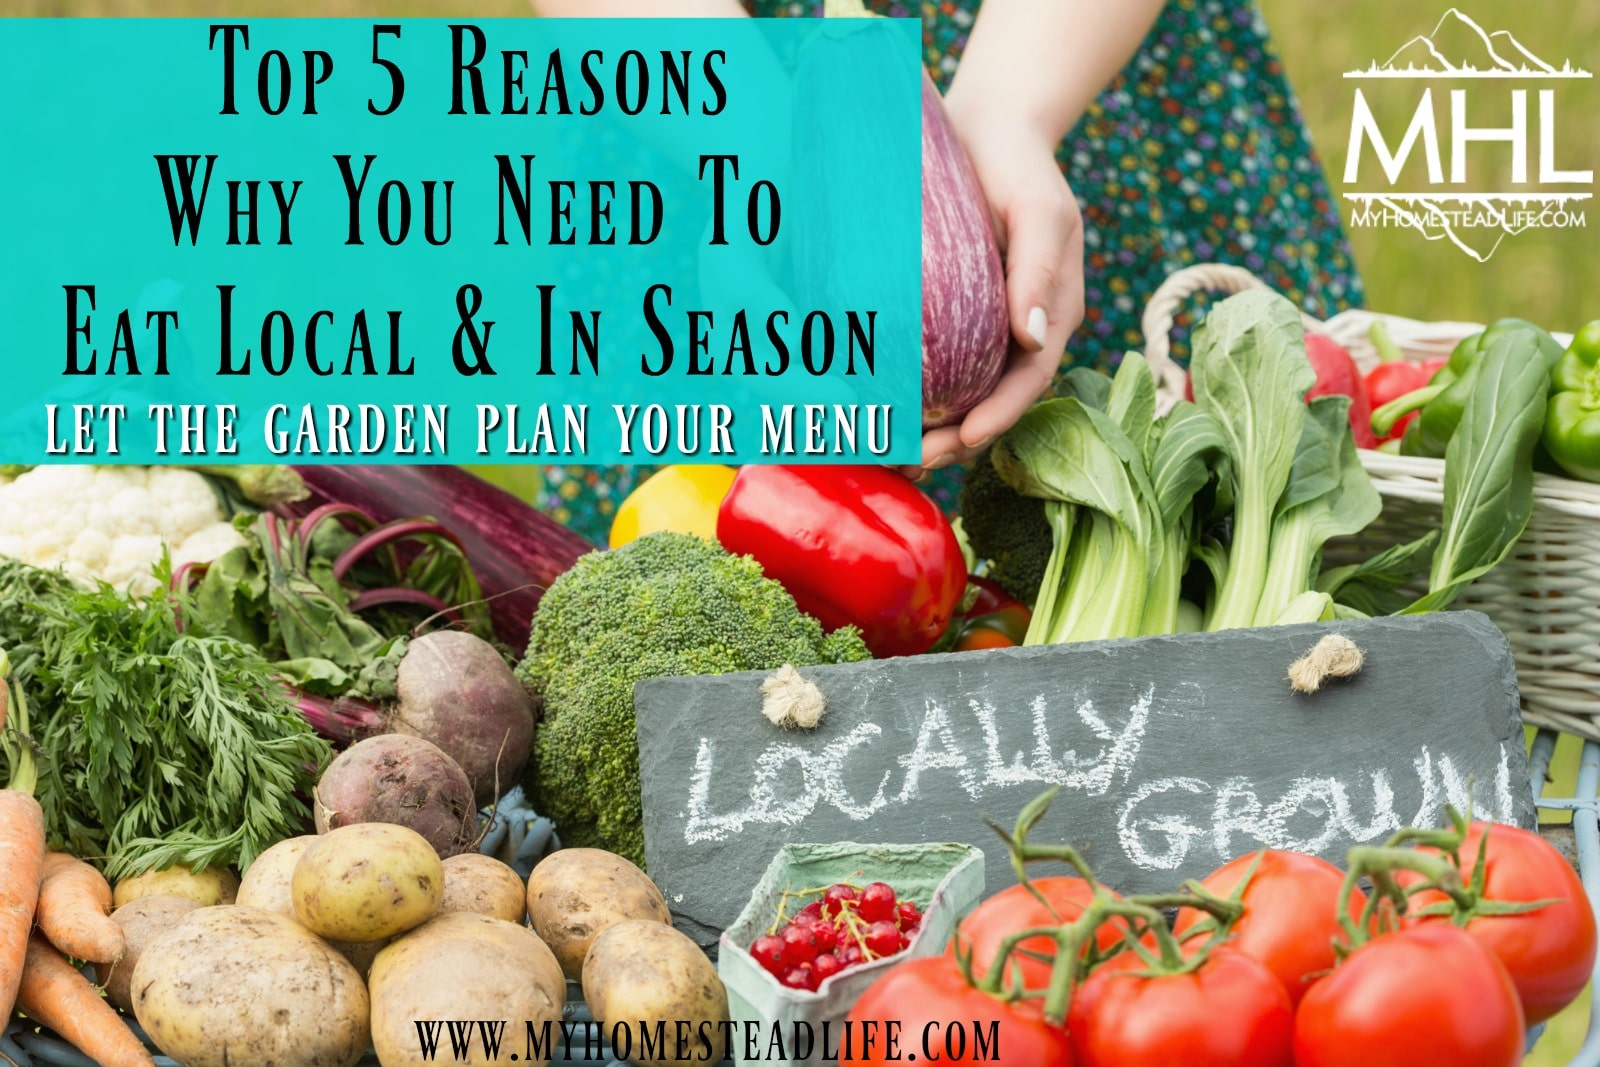 Top 5 Reasons Why You Need To Eat Local & In Season. Let the garden plan your menu